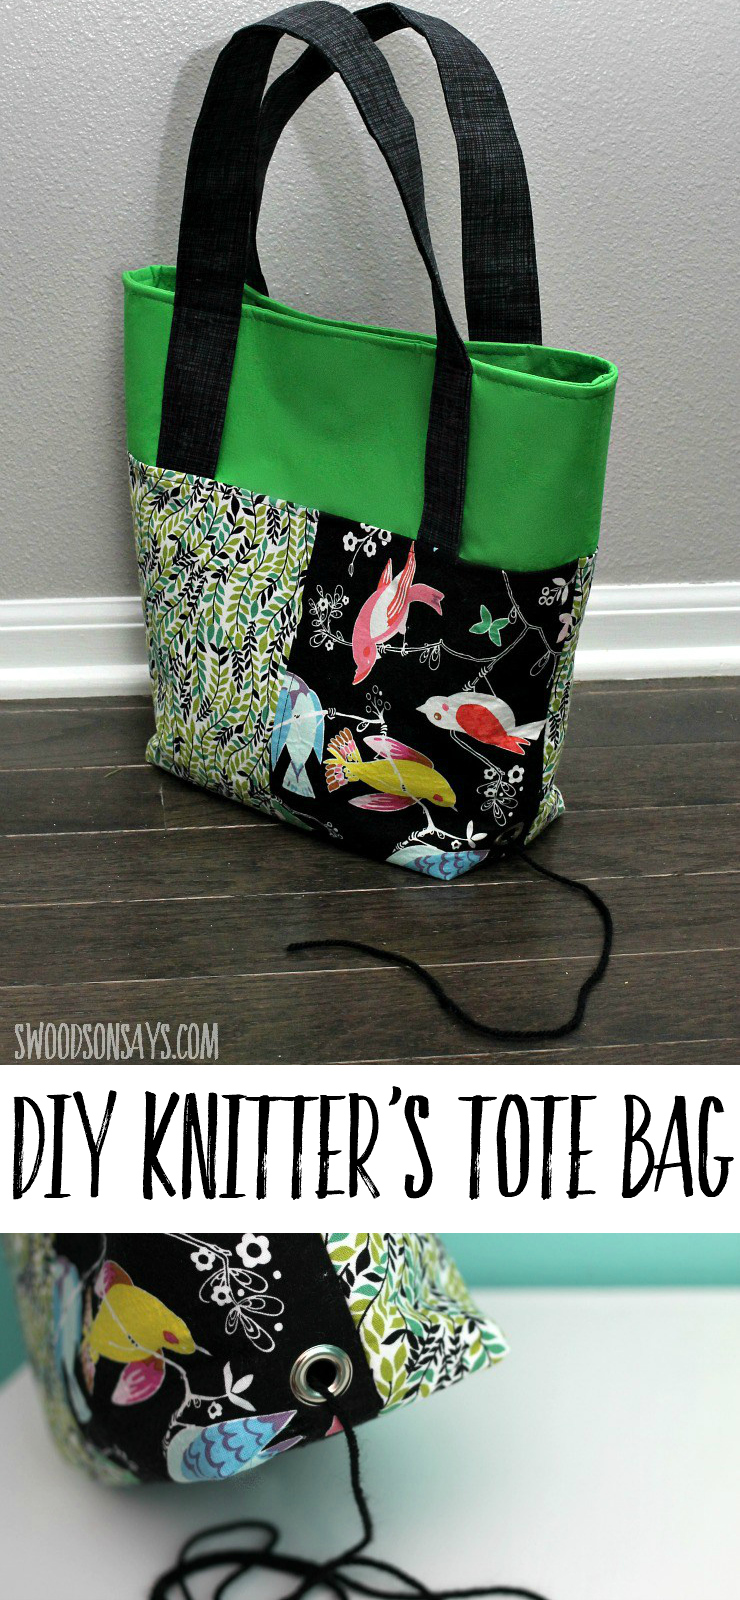 Fun PDF pattern for a knitter's project bag - click through to see how the sides fold down and the special yarn opening. Great gift idea to sew for a knitter!